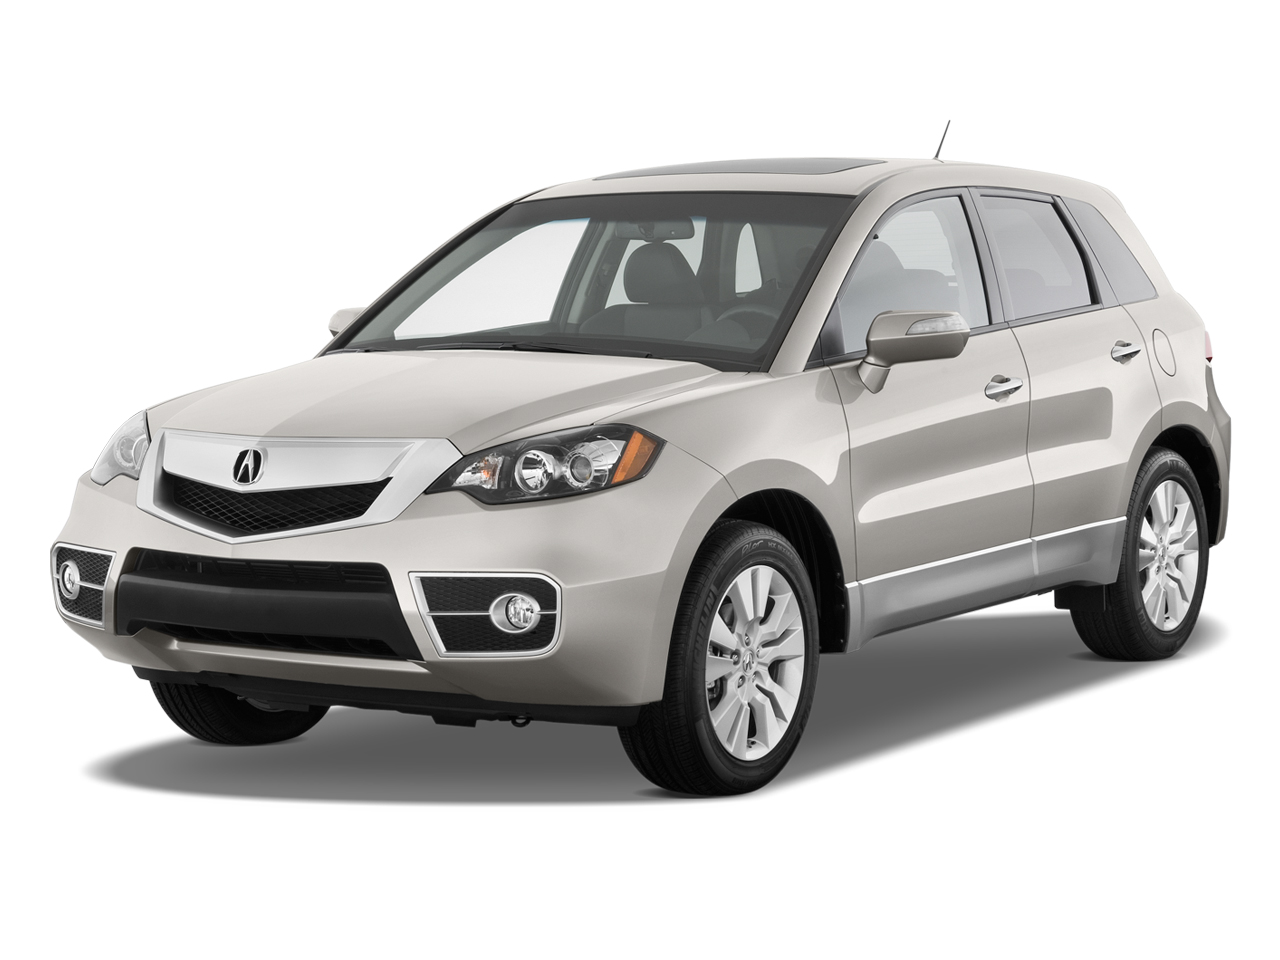 2011 Acura Rdx Review Ratings Specs Prices And Photos The Car Connection